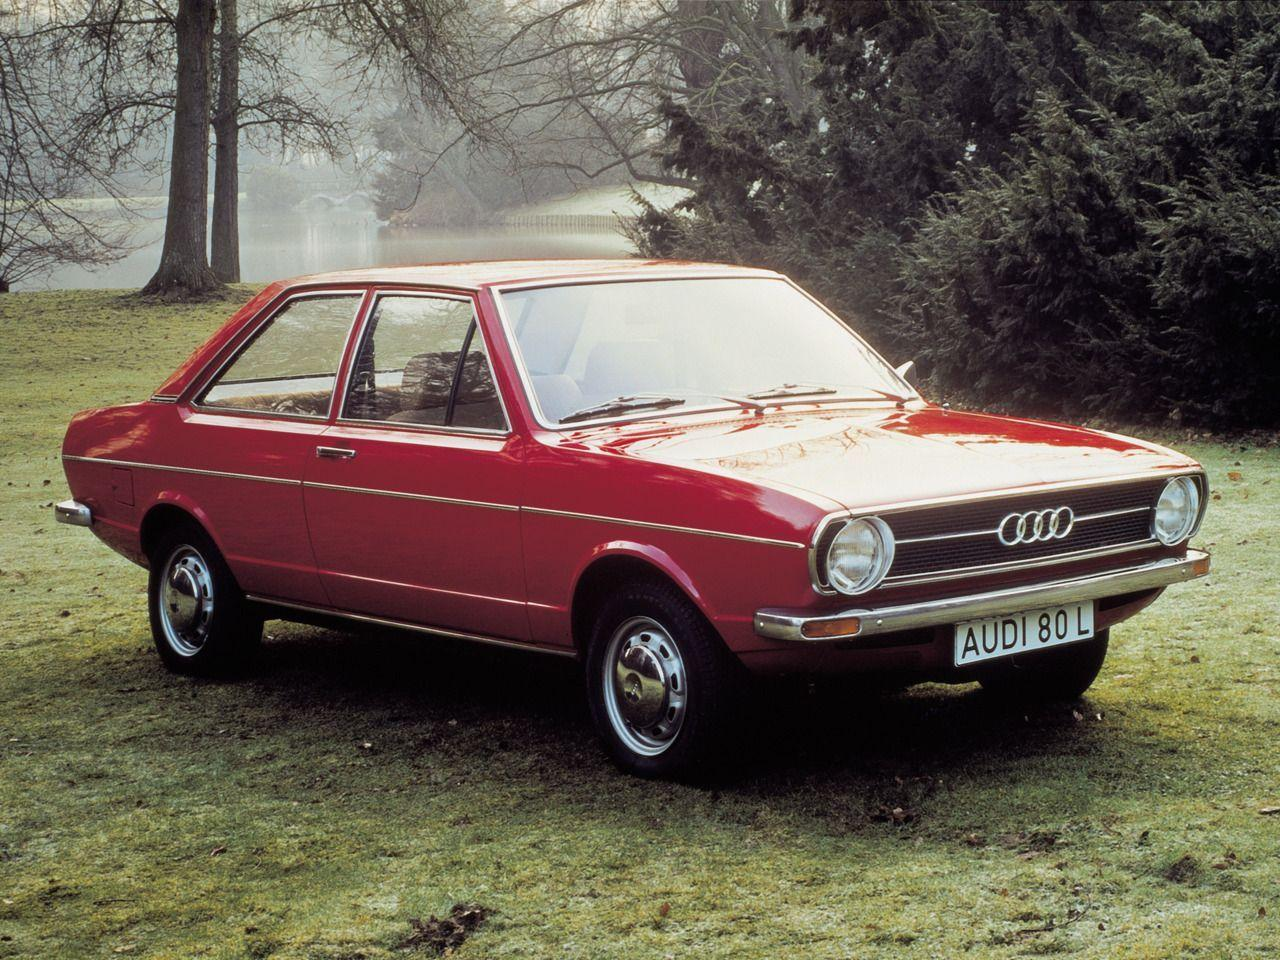 Audi 80...my first front wheel drive car...it was in a poo brown